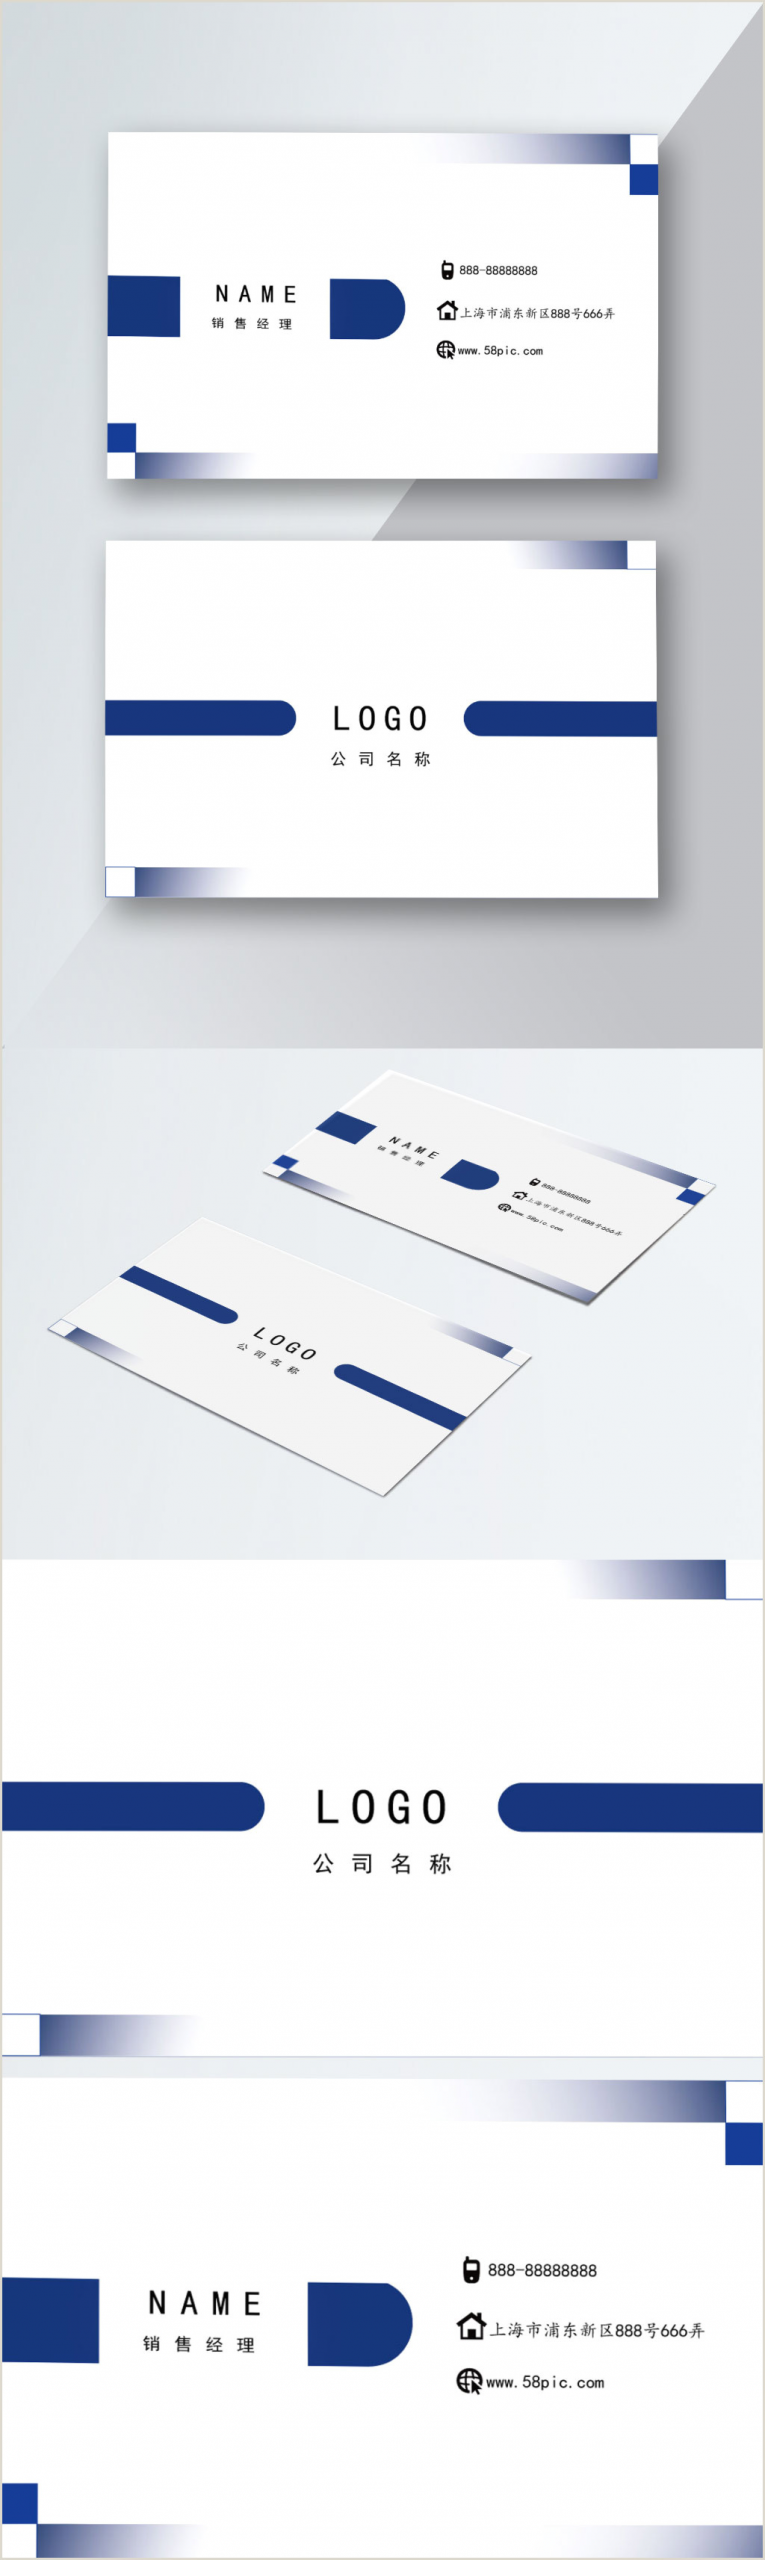 Blue Business Card Background Blue Business Card Template Image Picture Free